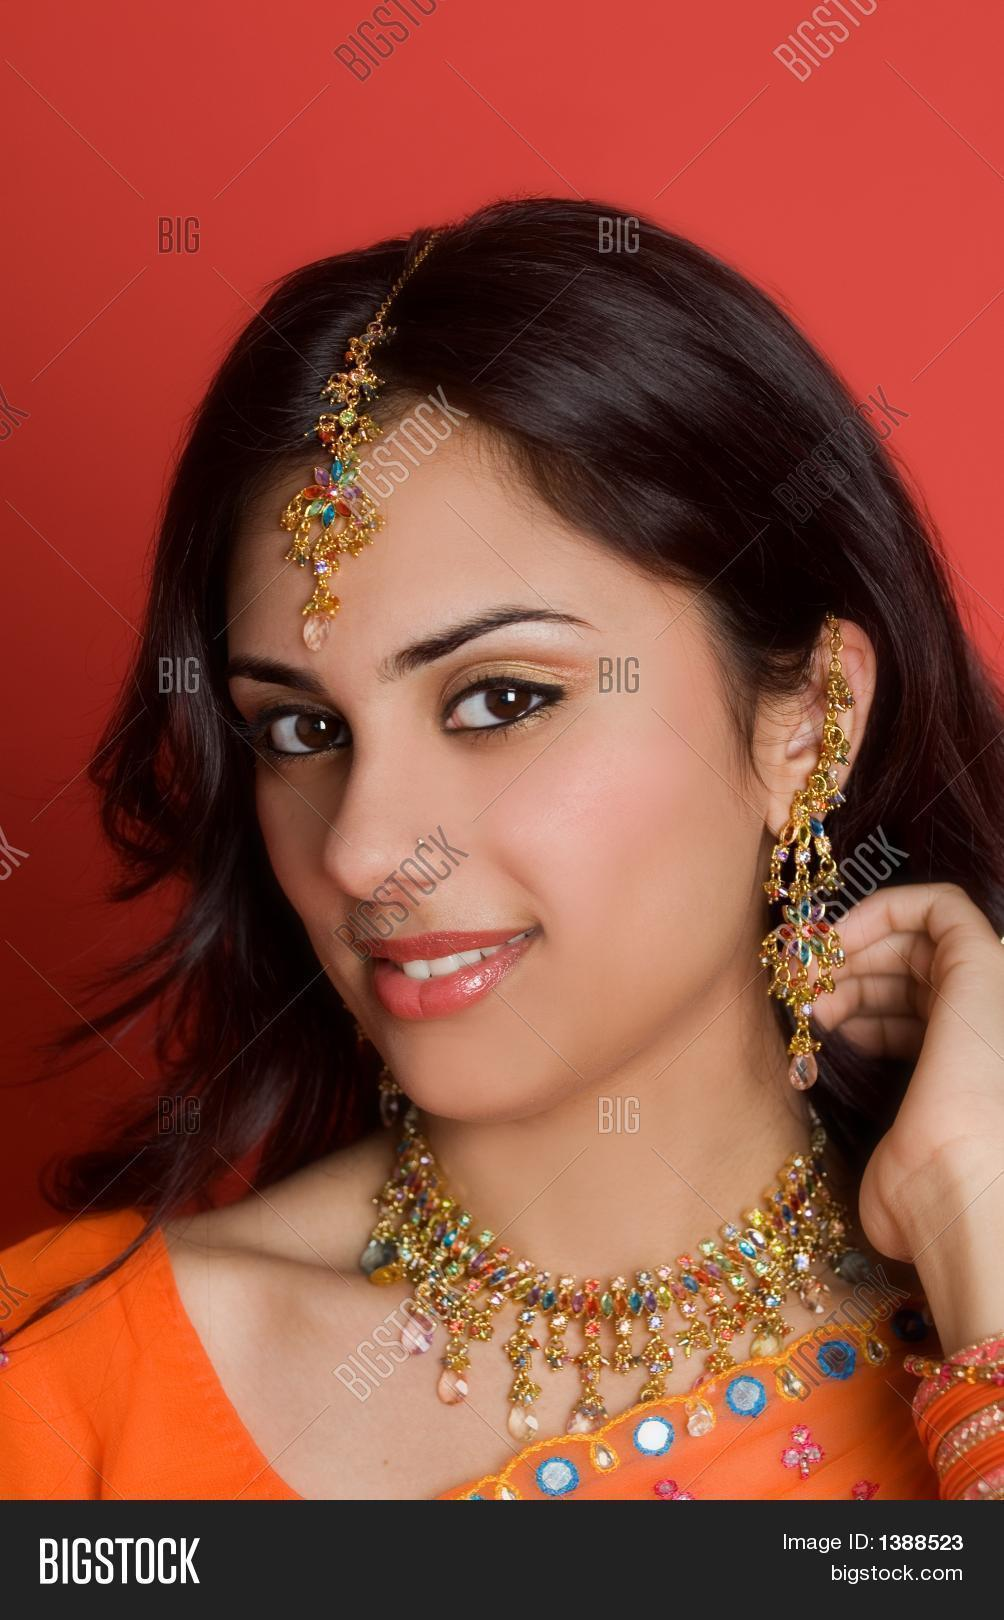 suitland hindu single women India has many exotic beautiful indian girls dating indian women online can be a special experience, below are 10 tops of how to date indian women.